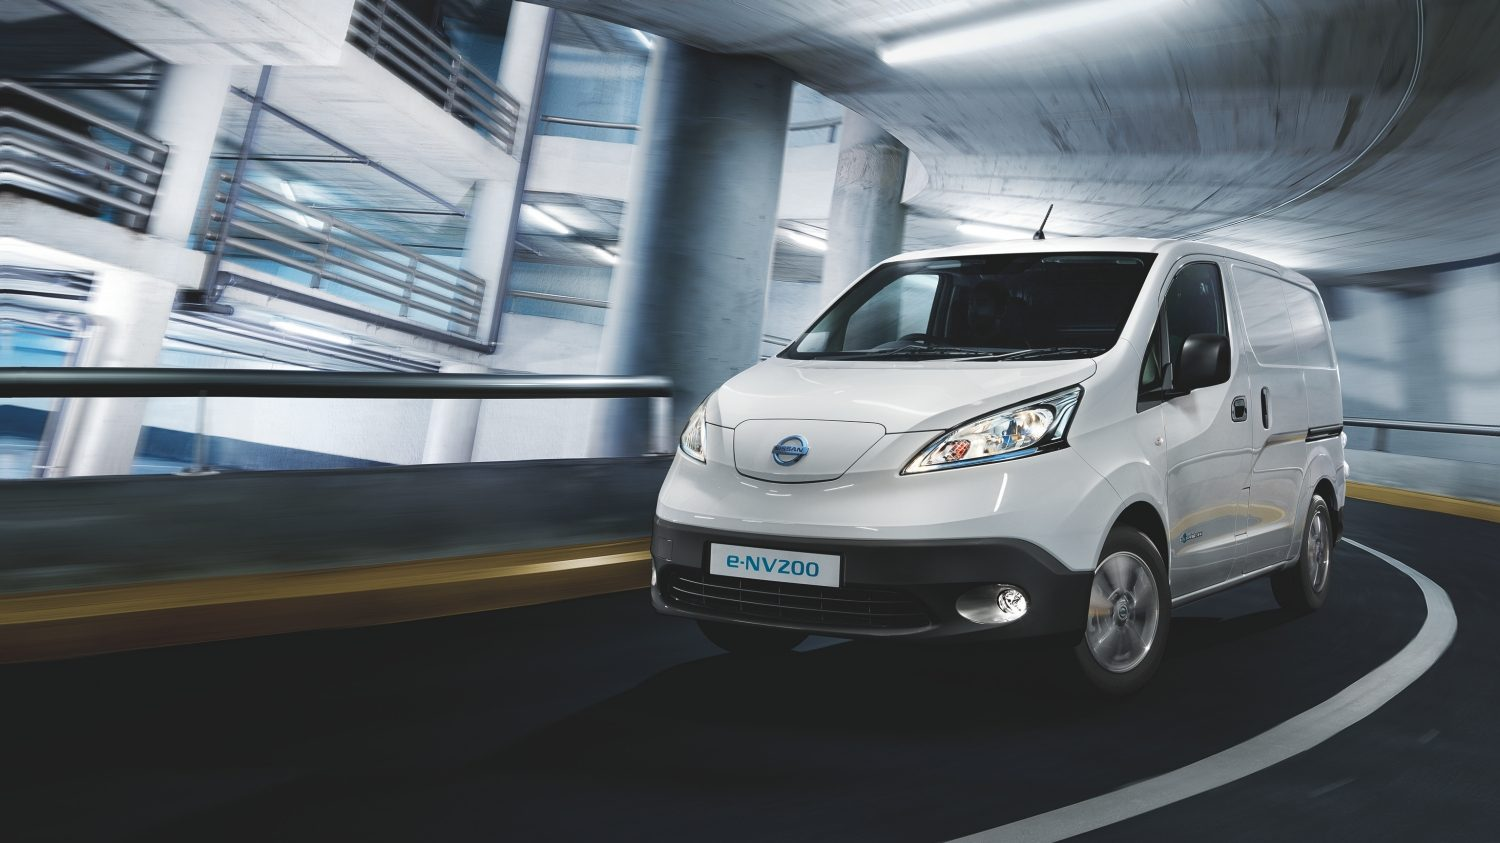 Nissan e-NV200 white - Front angle driving on curve